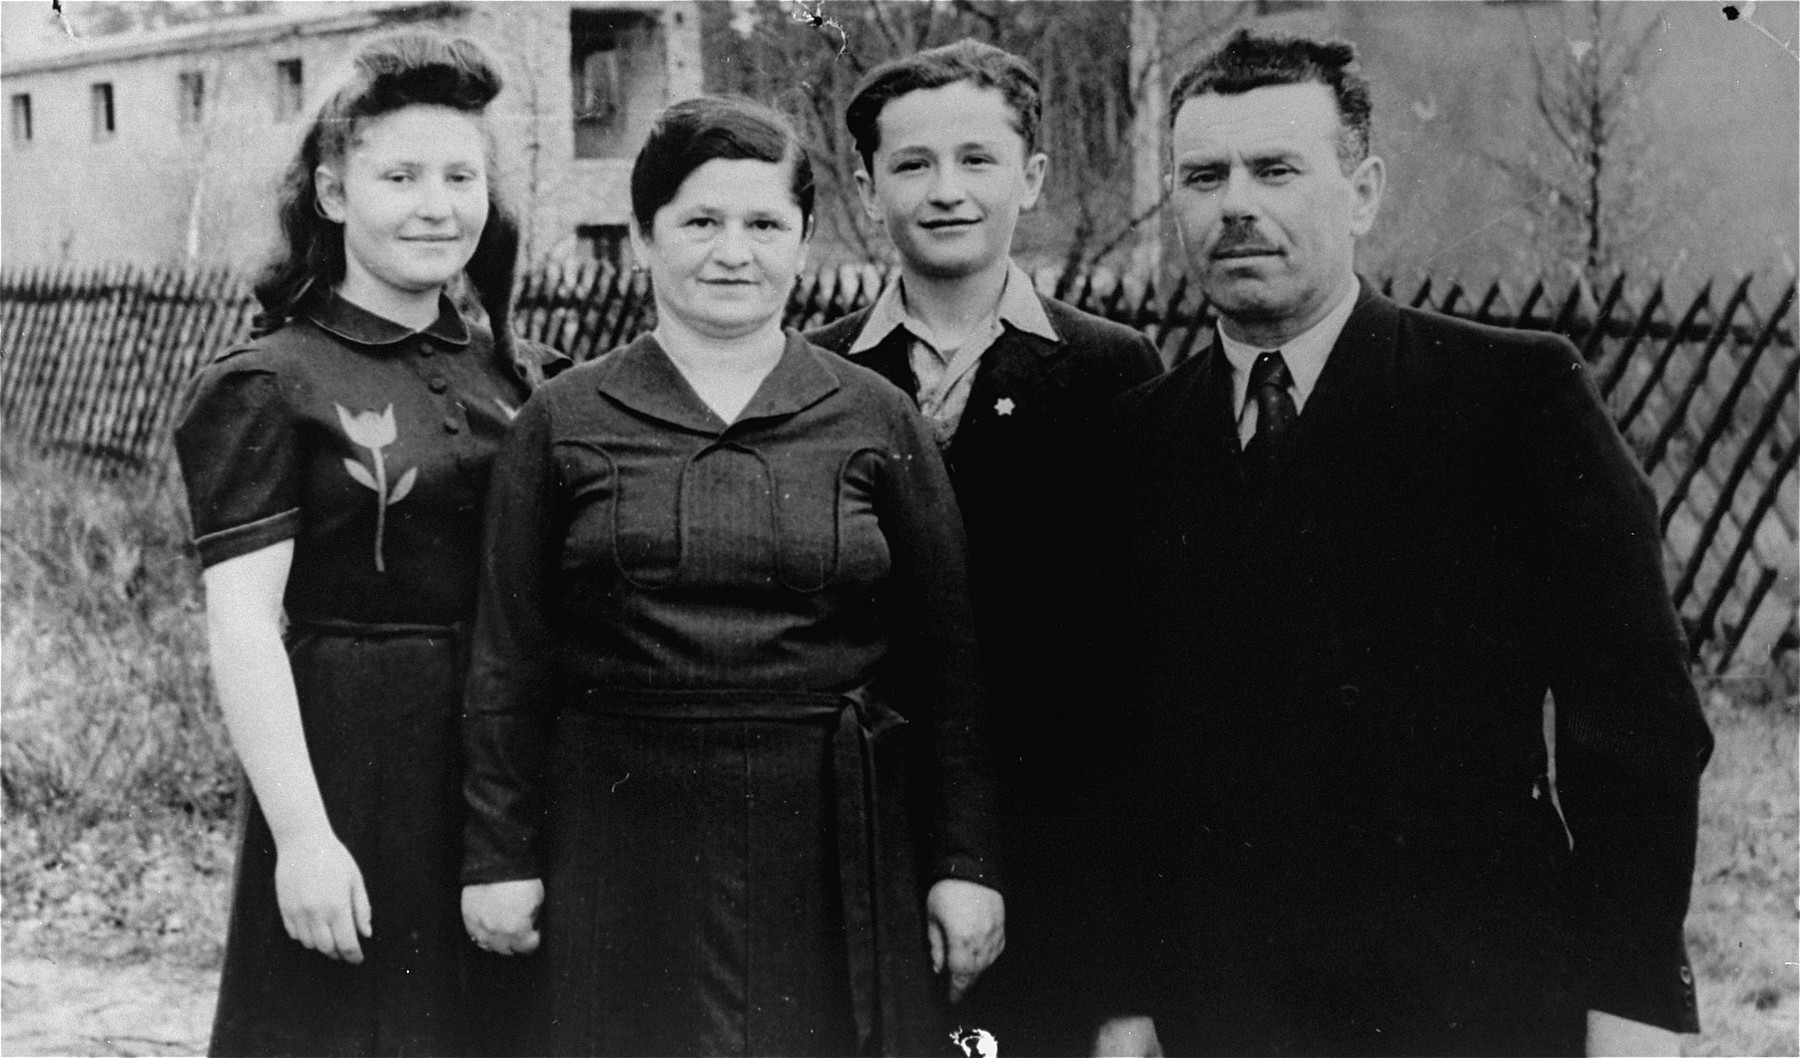 Portrait of the Gliklich family in the Schlachtensee displaced persons camp in Berlin-Duppel.    Pictured are the donor, Lusia Gliklich (far left) with her father and mother, Gershon and Shifra Gliklich, and her younger brother Moniek.